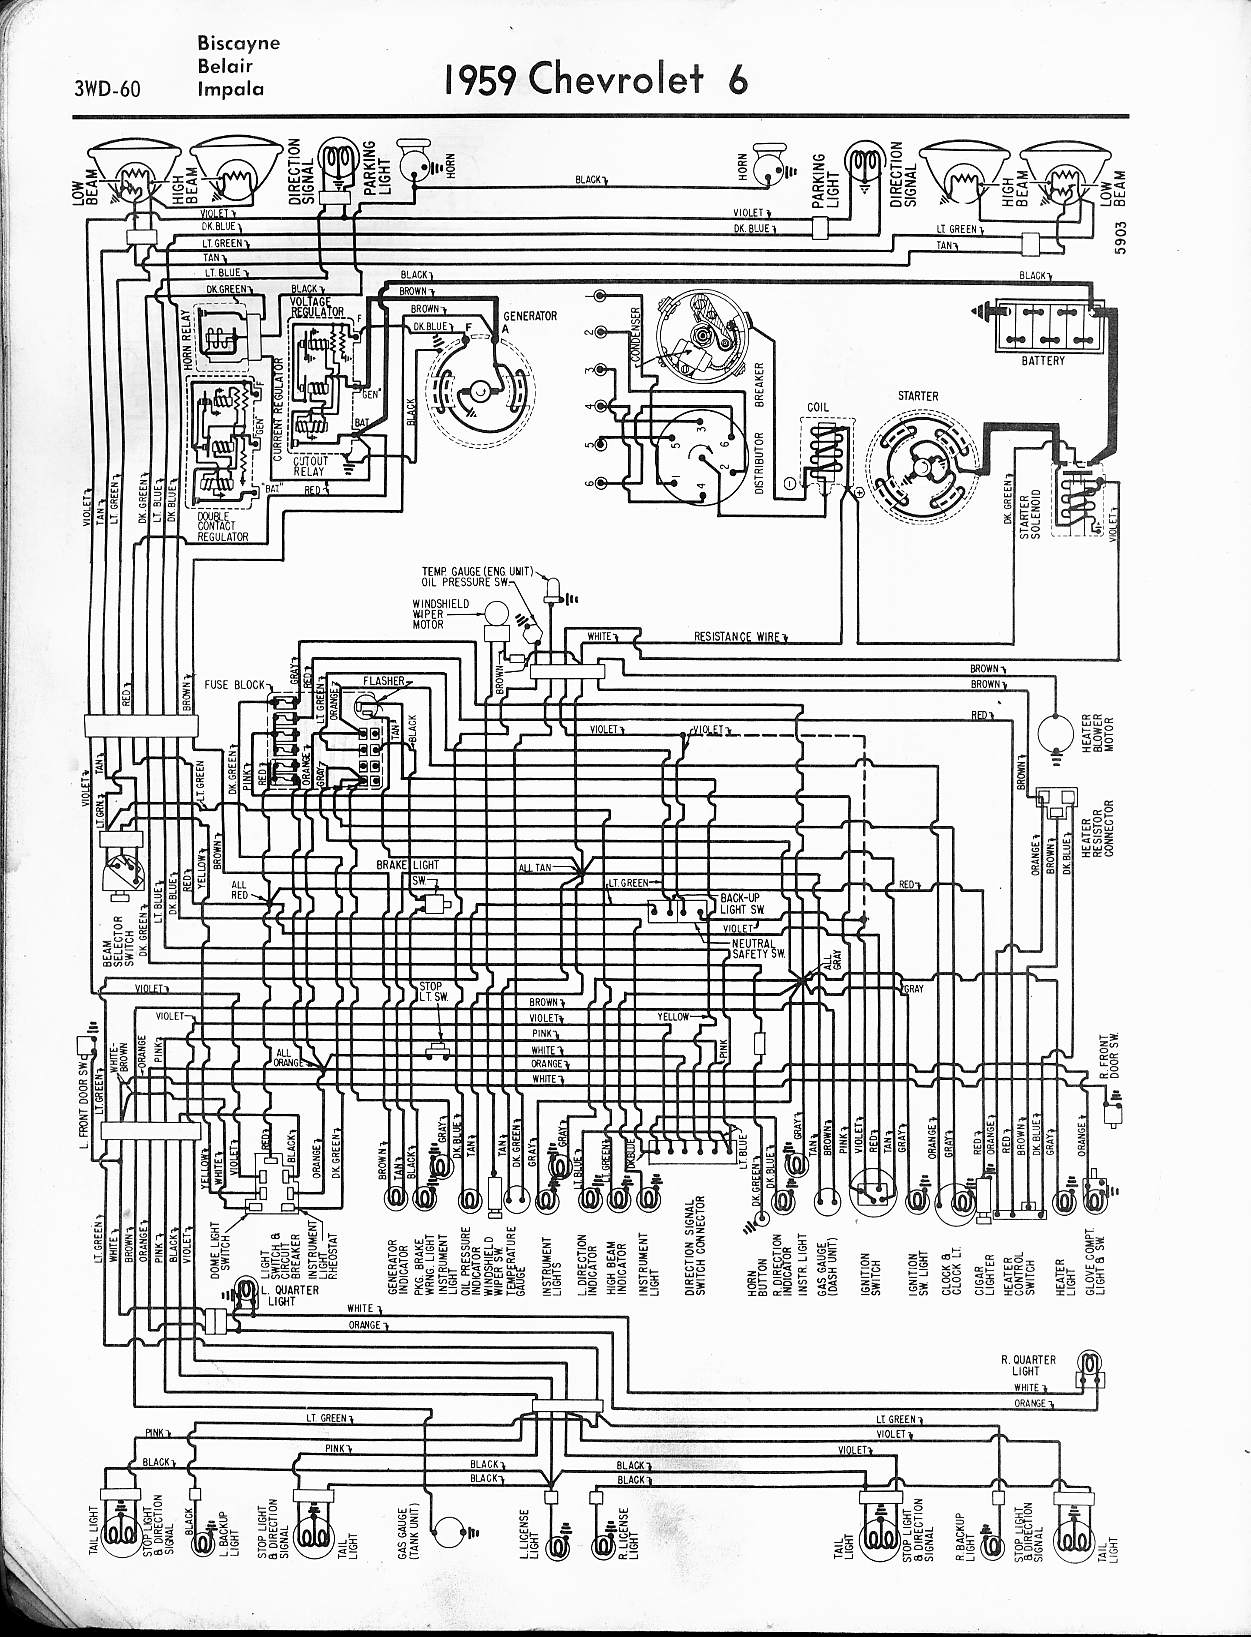 1959 Gm Starter Wiring Diagram Manual Guide 80 Chevy 57 65 Diagrams Rh Oldcarmanualproject Com